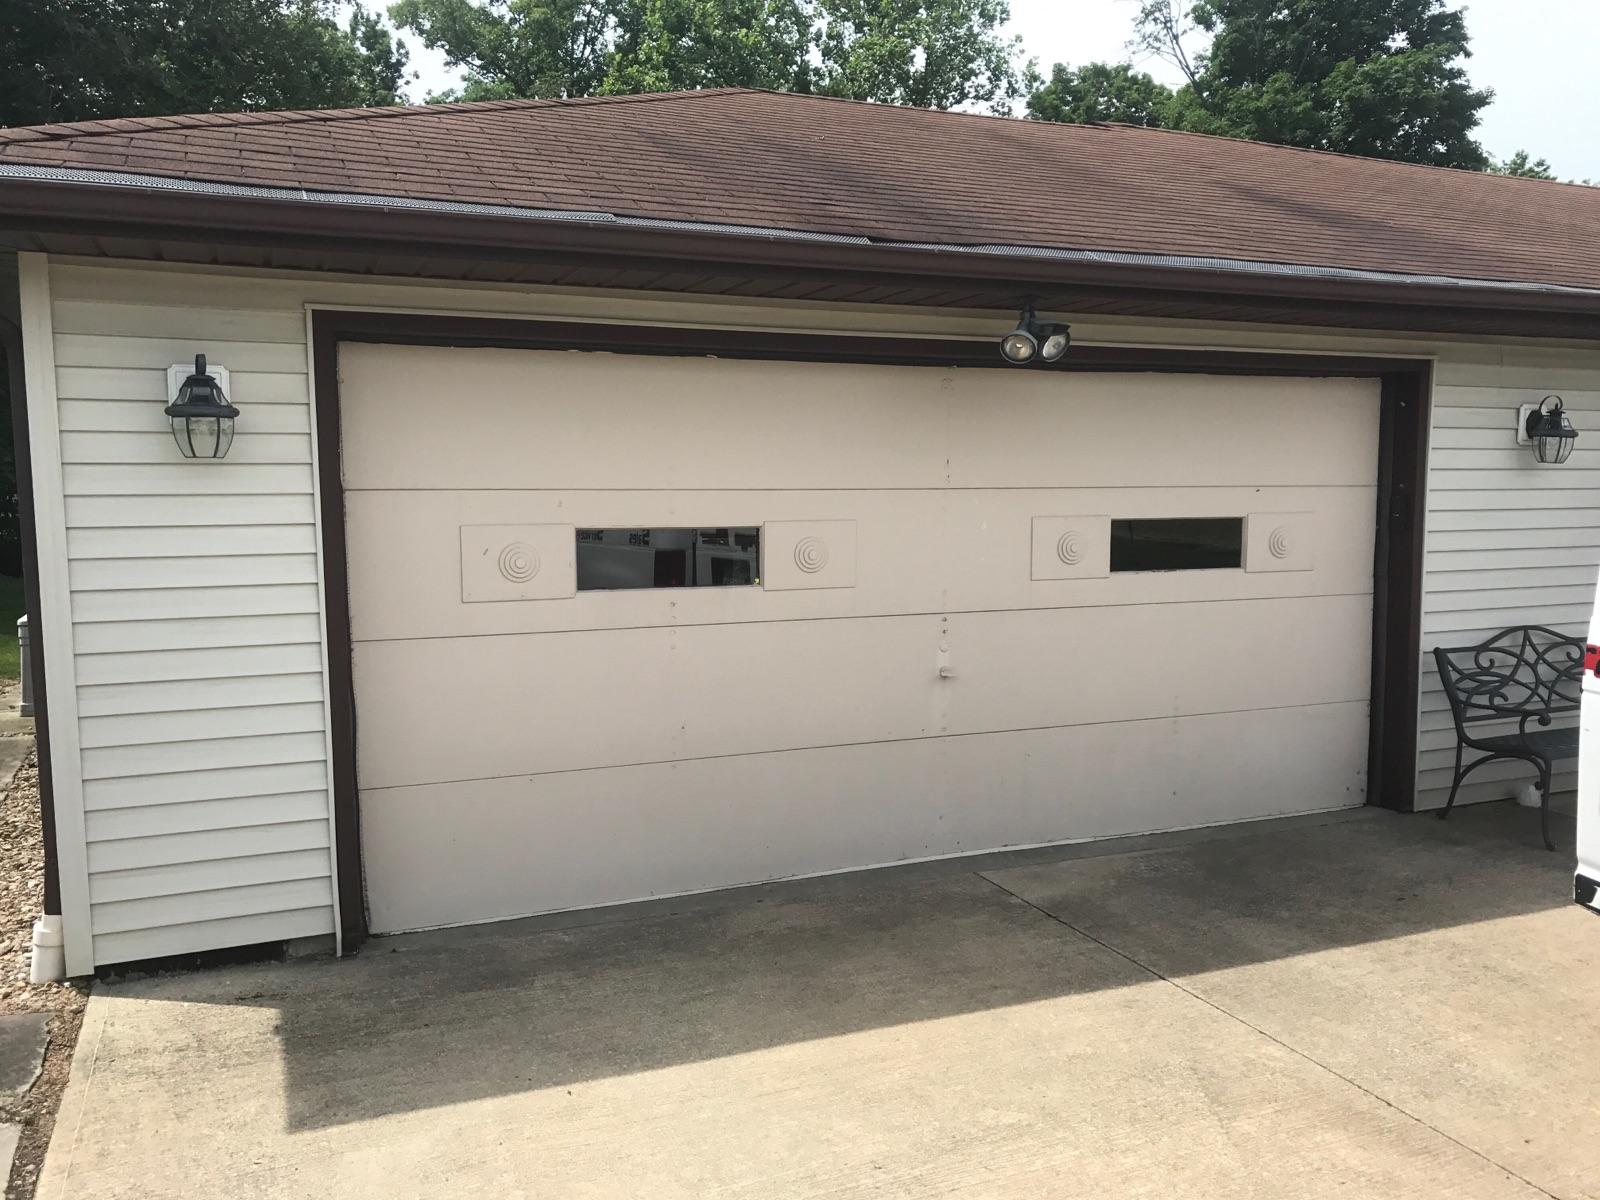 New Garage Door Installation Old Garage Door Replacement